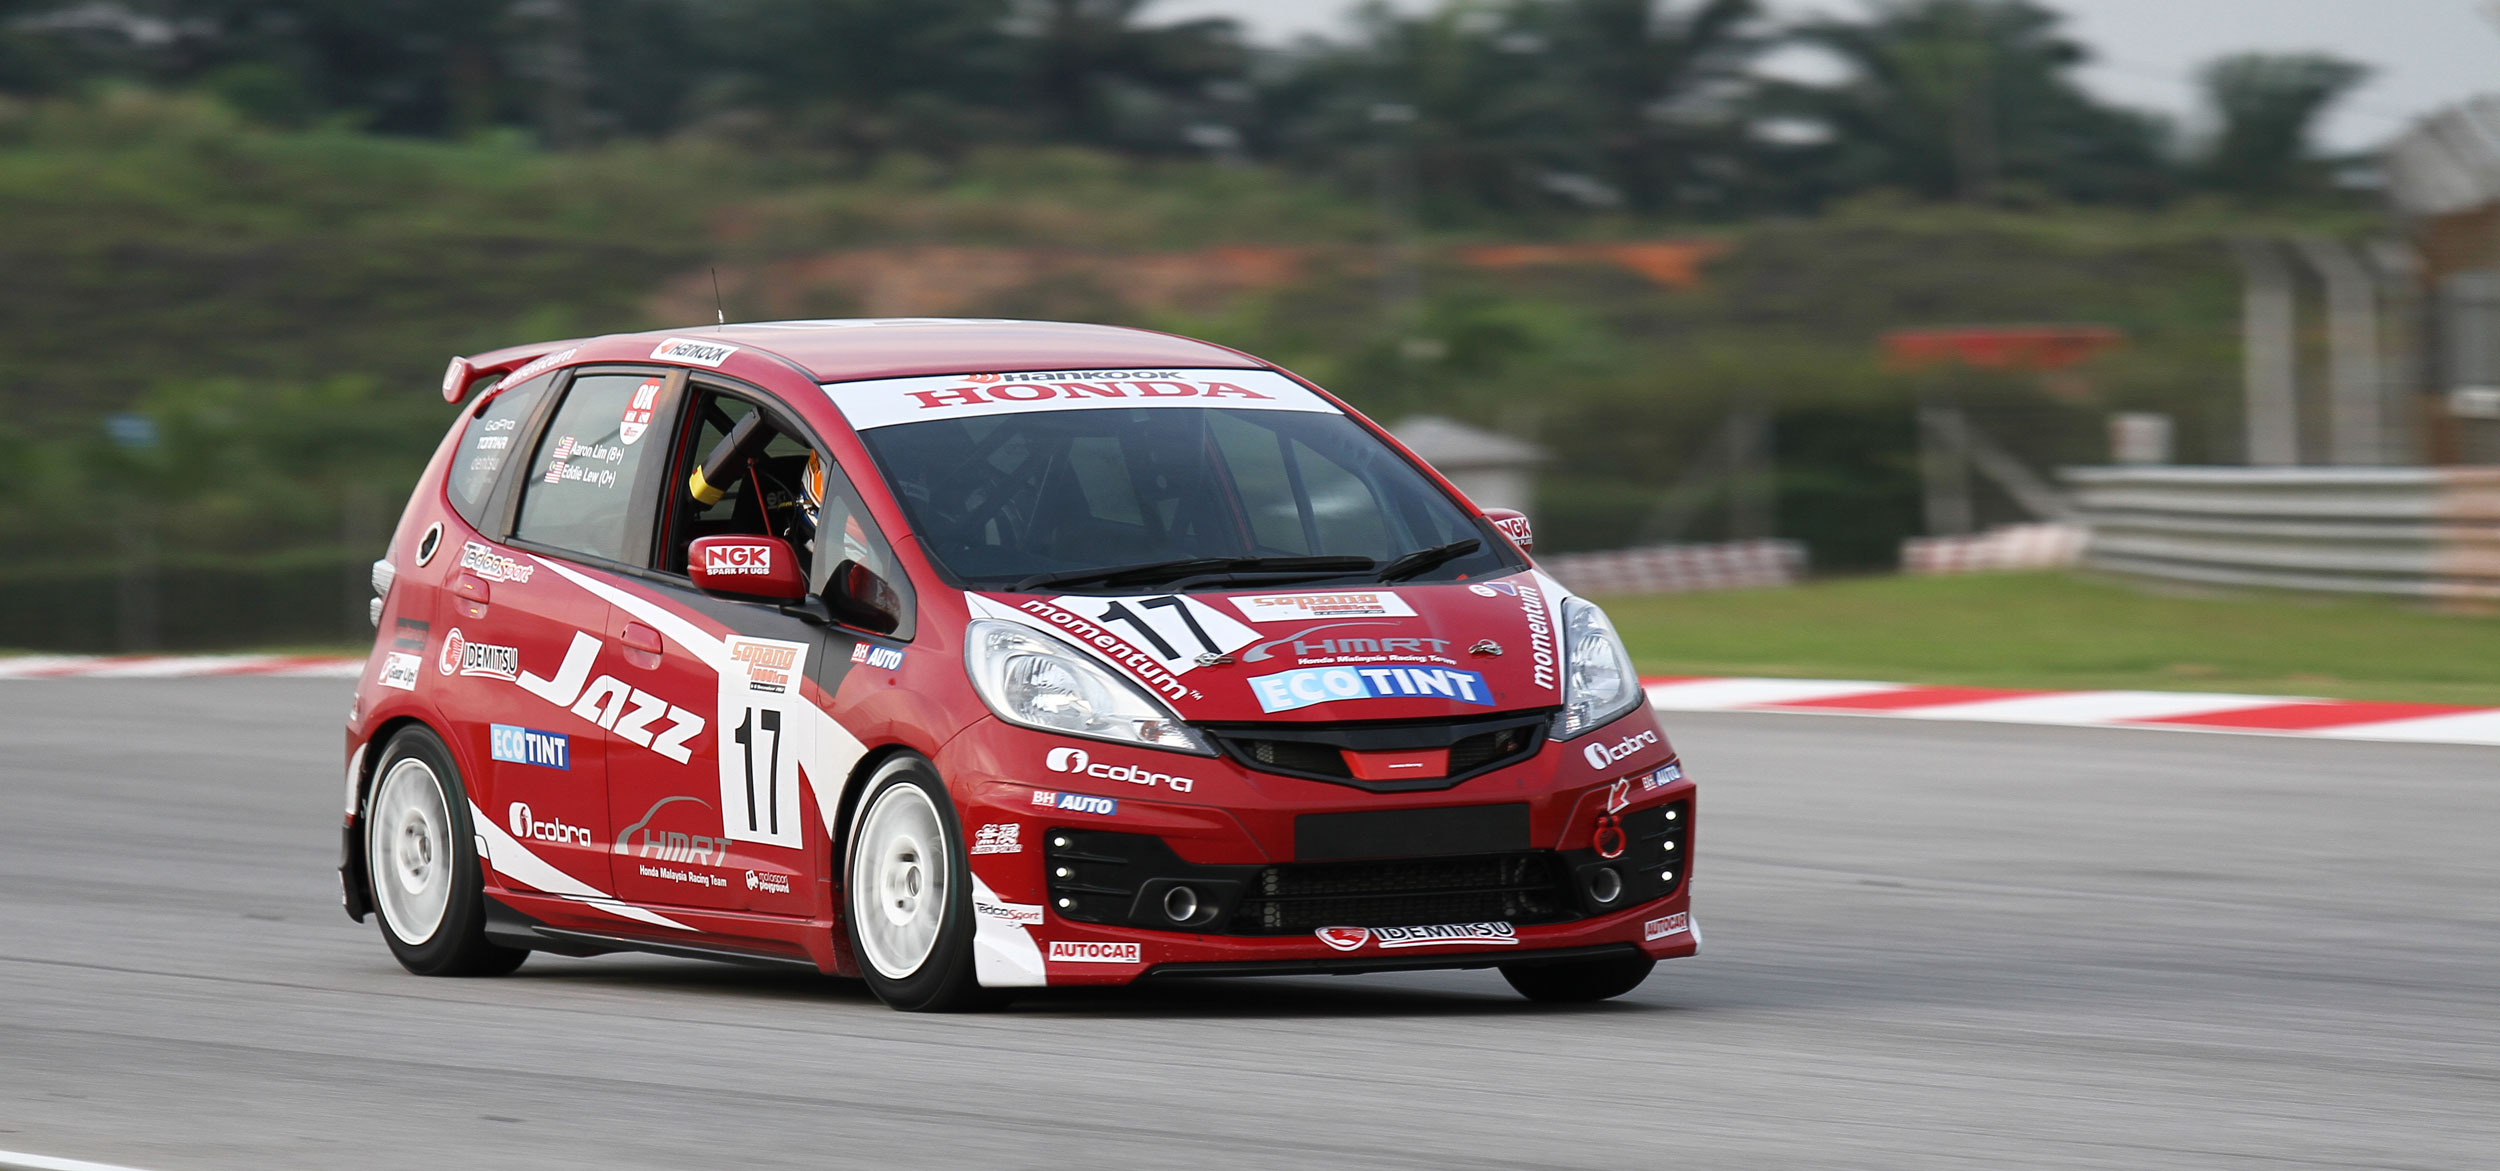 Endurance Car Insurance >> Honda Malaysia Racing Team misses out on podium at the ...